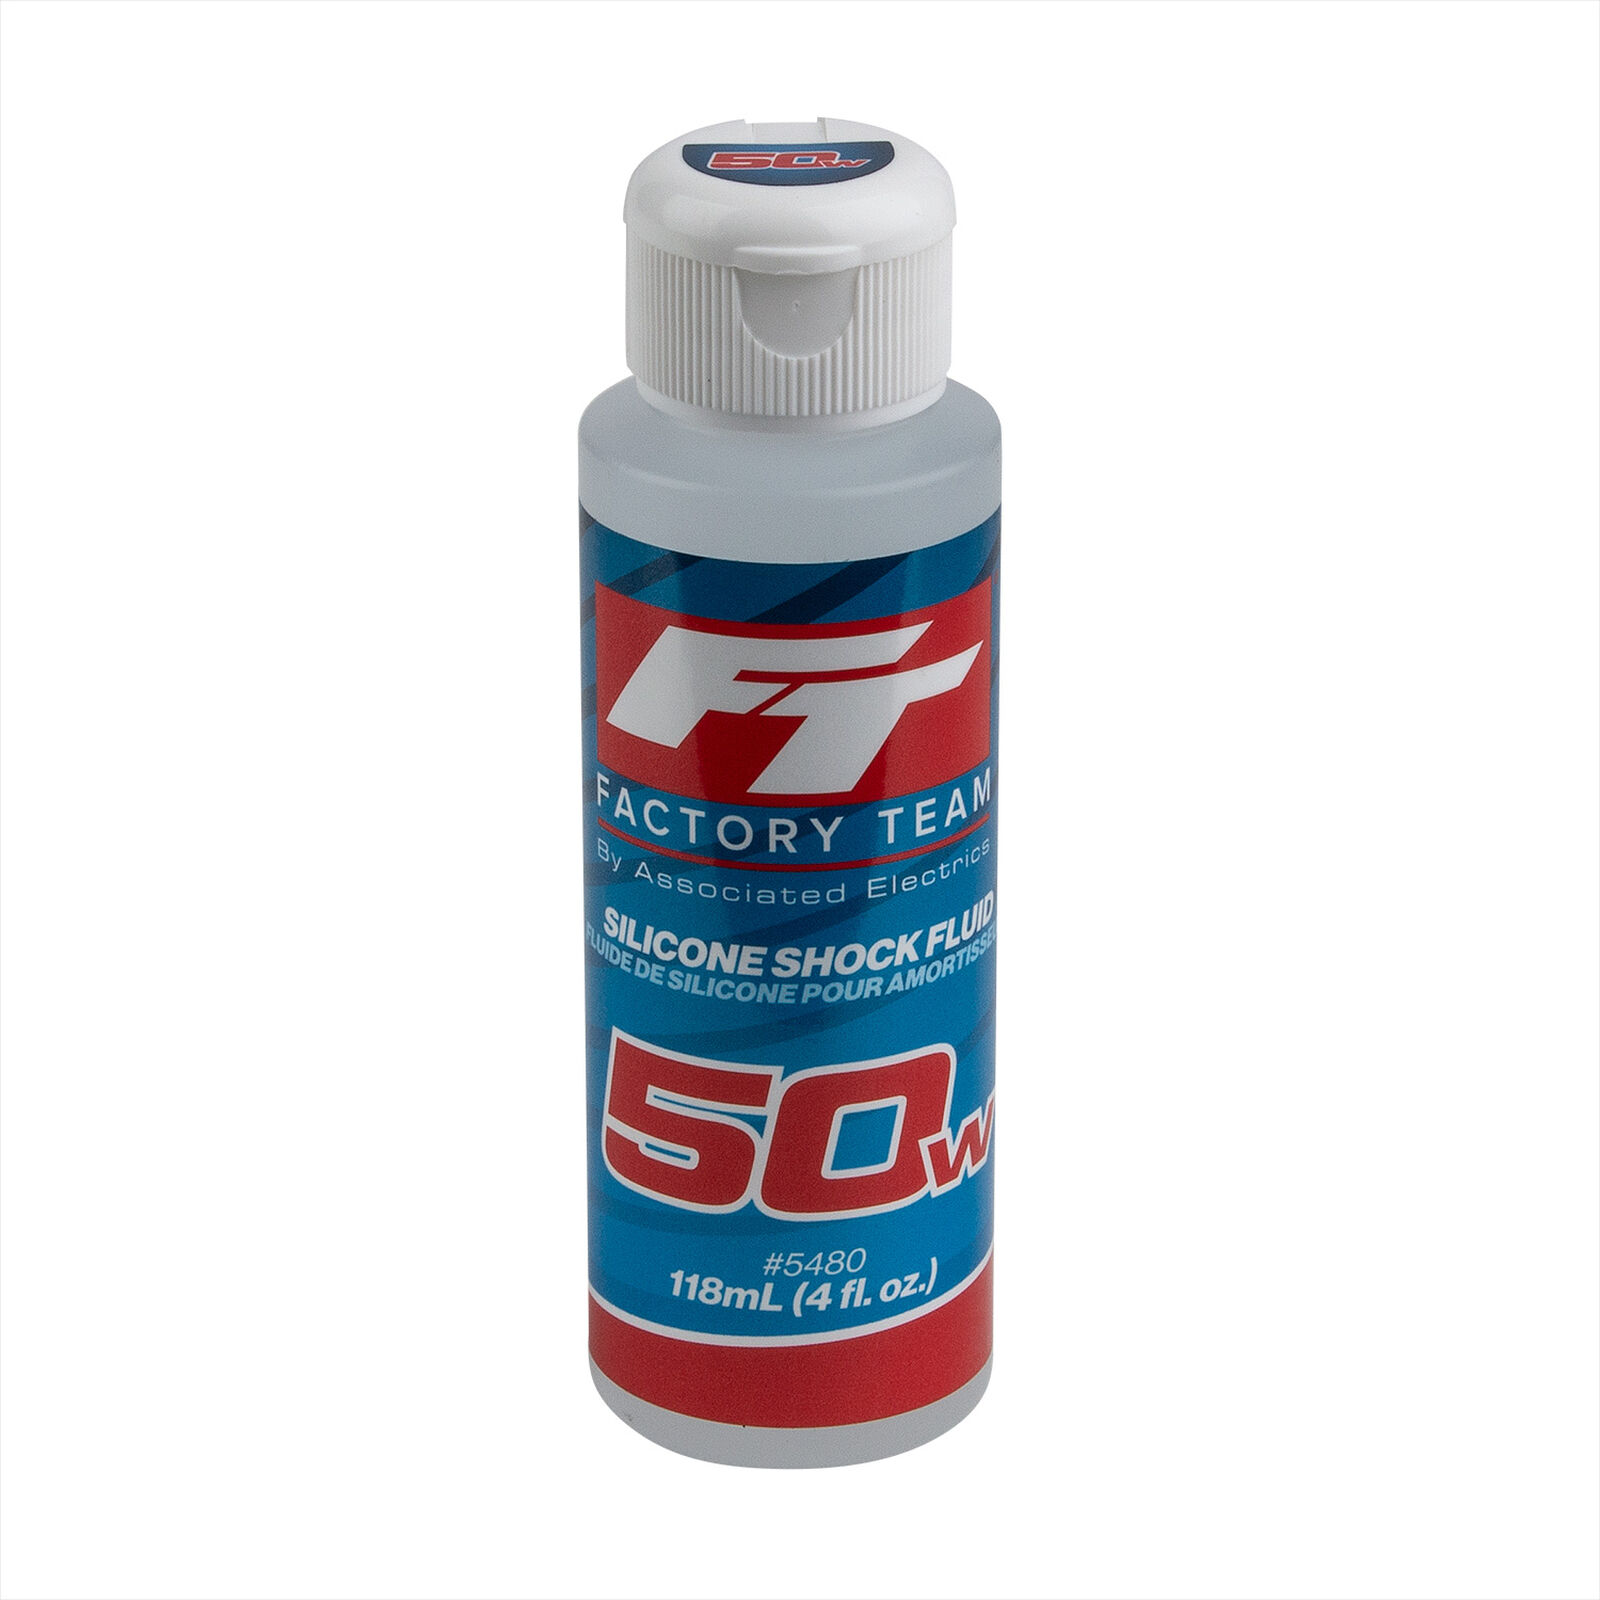 FT Silicone Shock Fluid, 50wt (650 cSt)